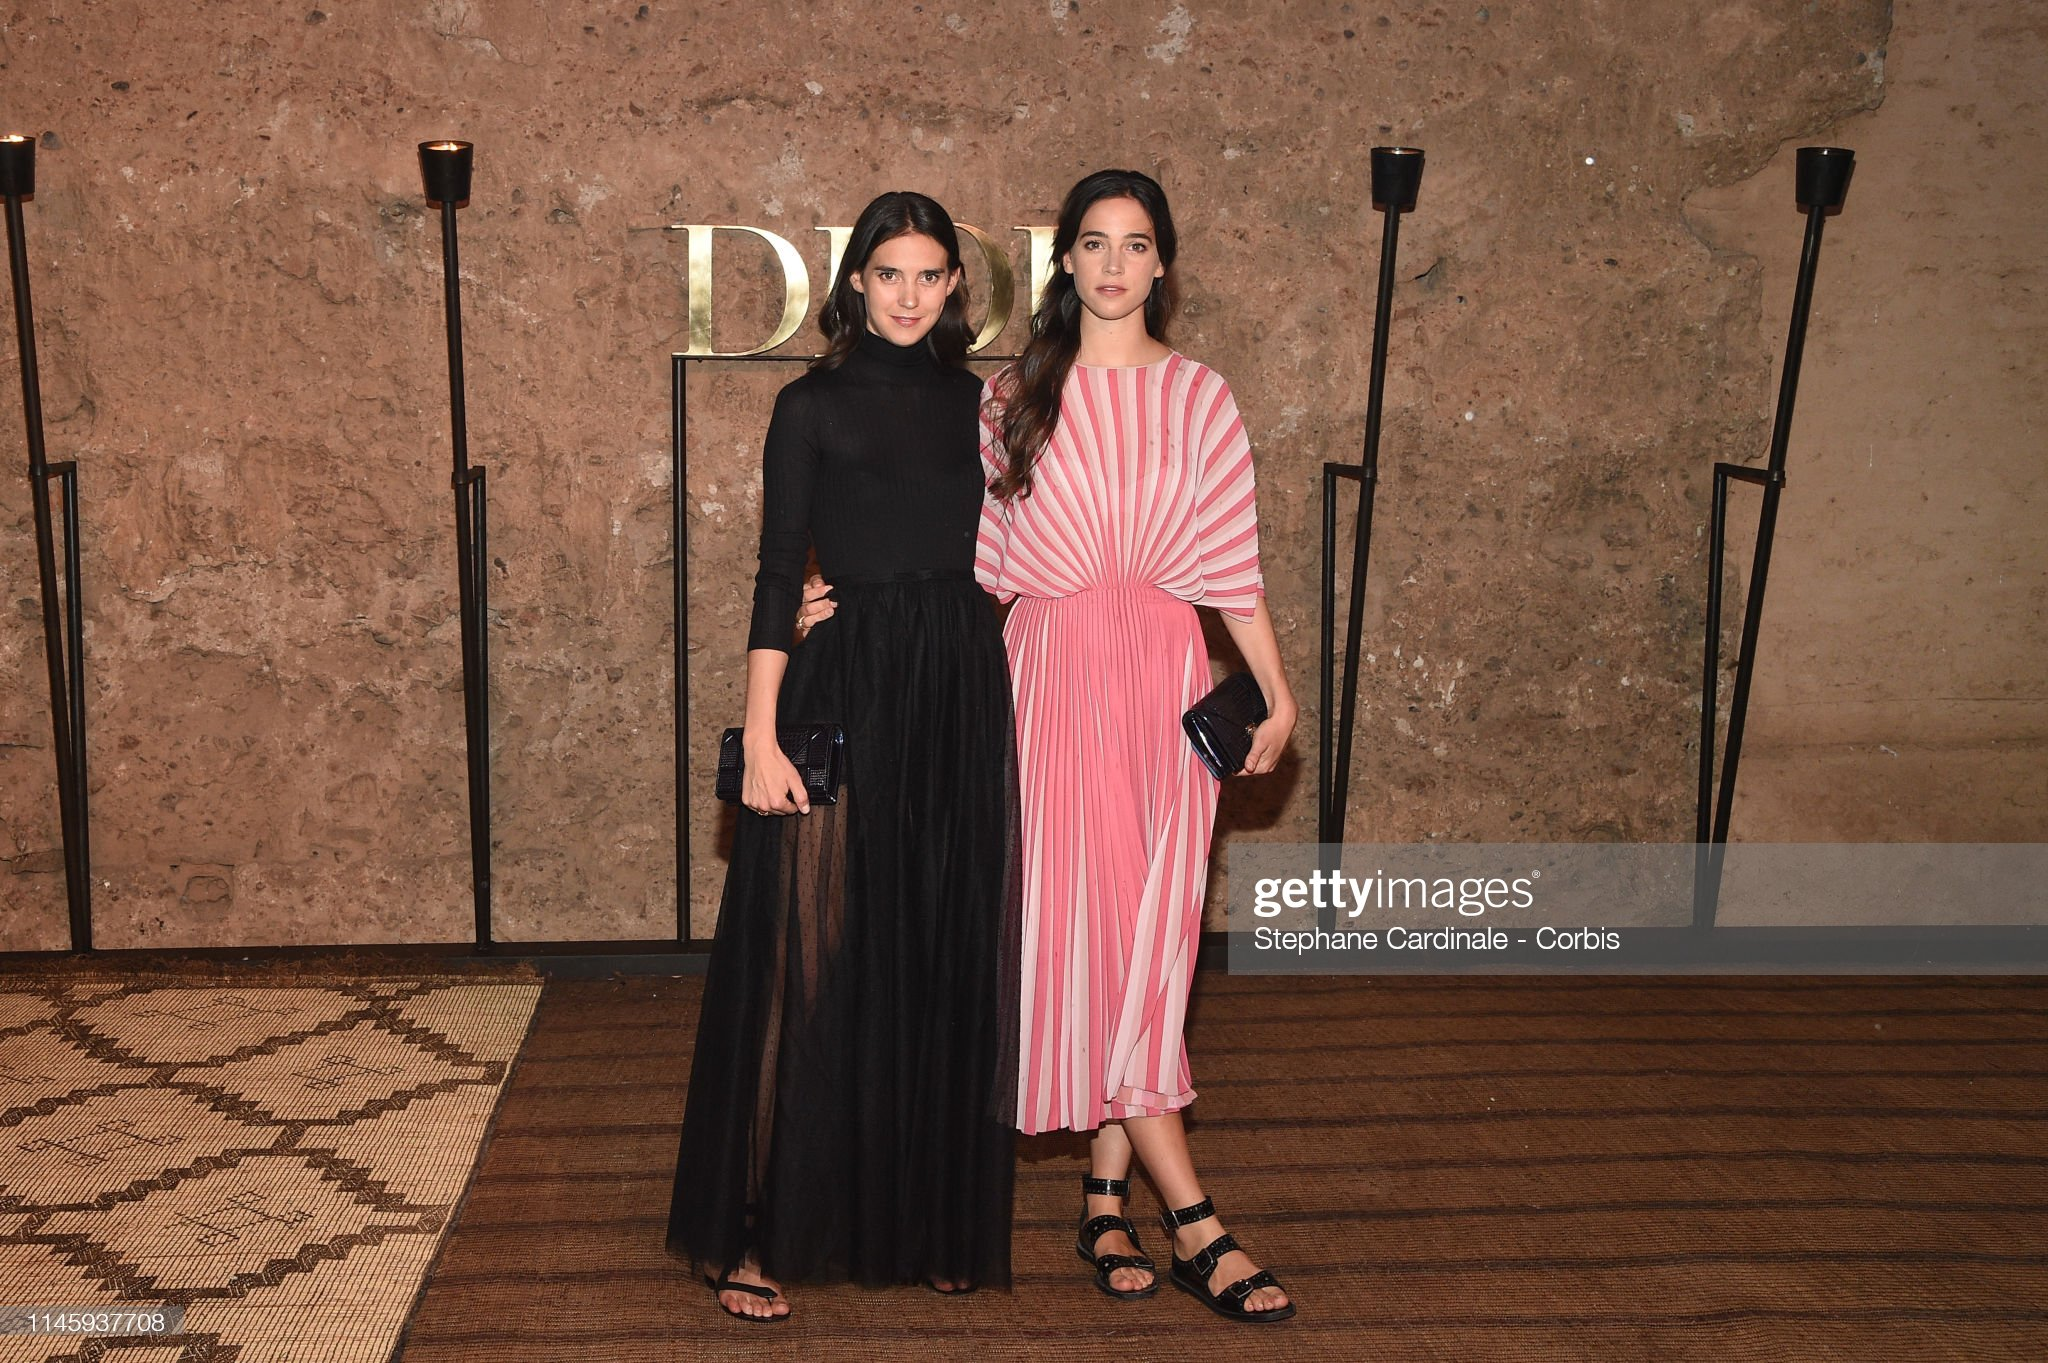 https://media.gettyimages.com/photos/viola-and-vera-arrivabene-attends-the-christian-dior-couture-ss20-picture-id1145937708?s=2048x2048